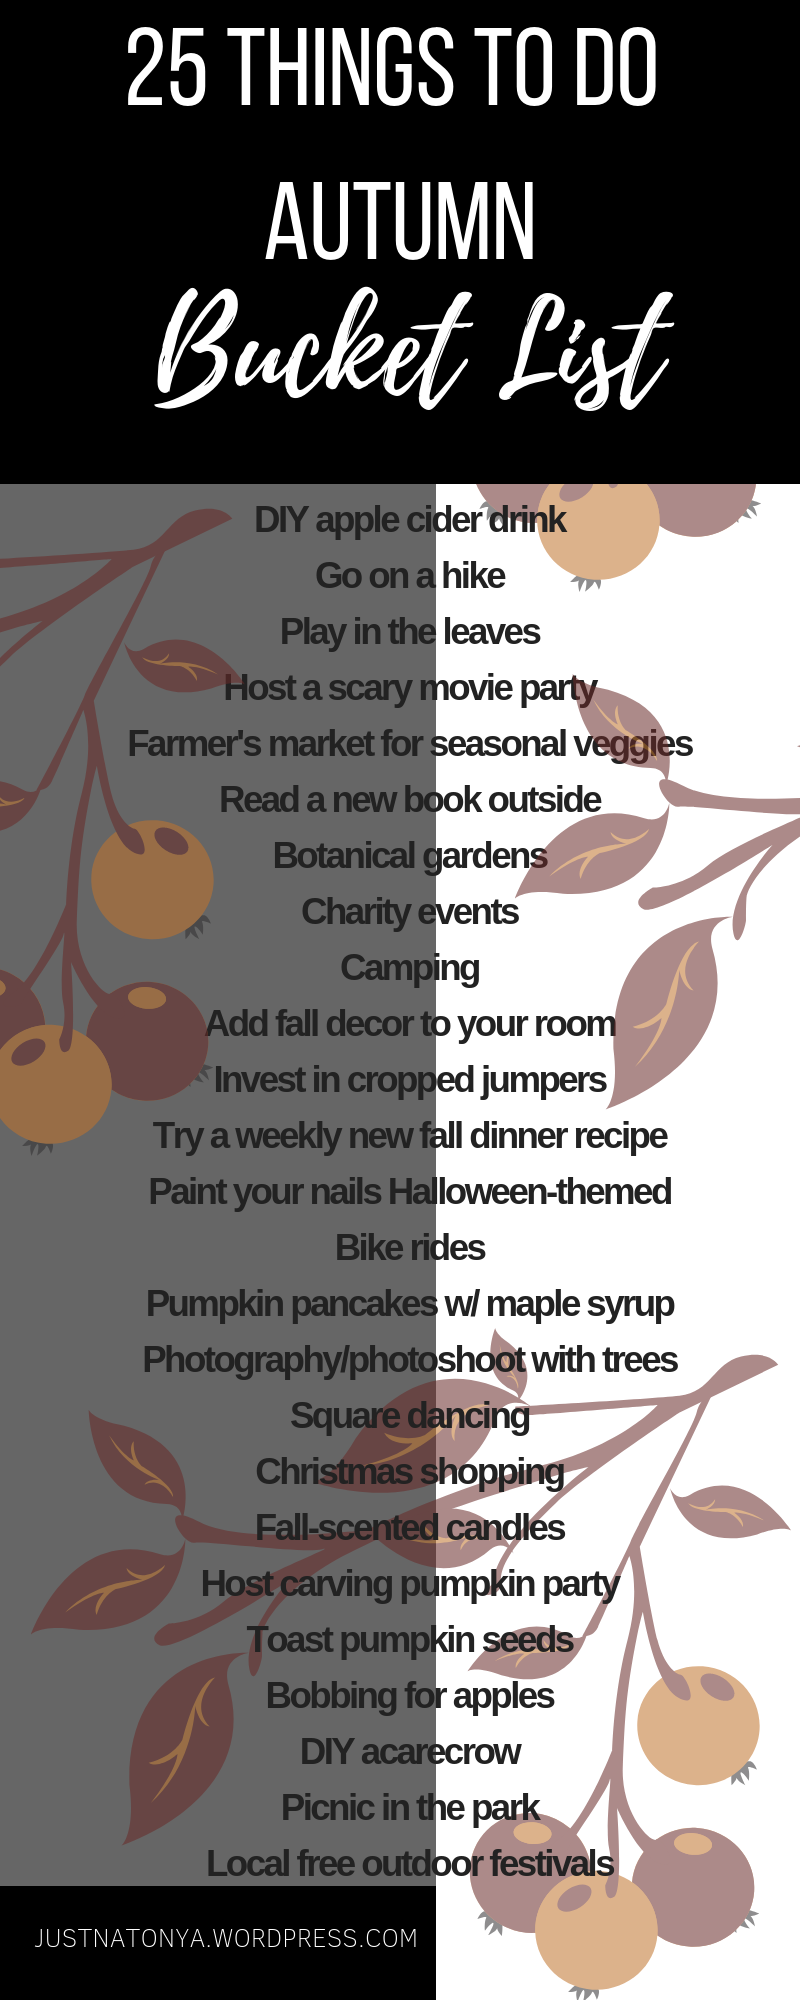 JustNatonya 25 Things to Do in Autumn